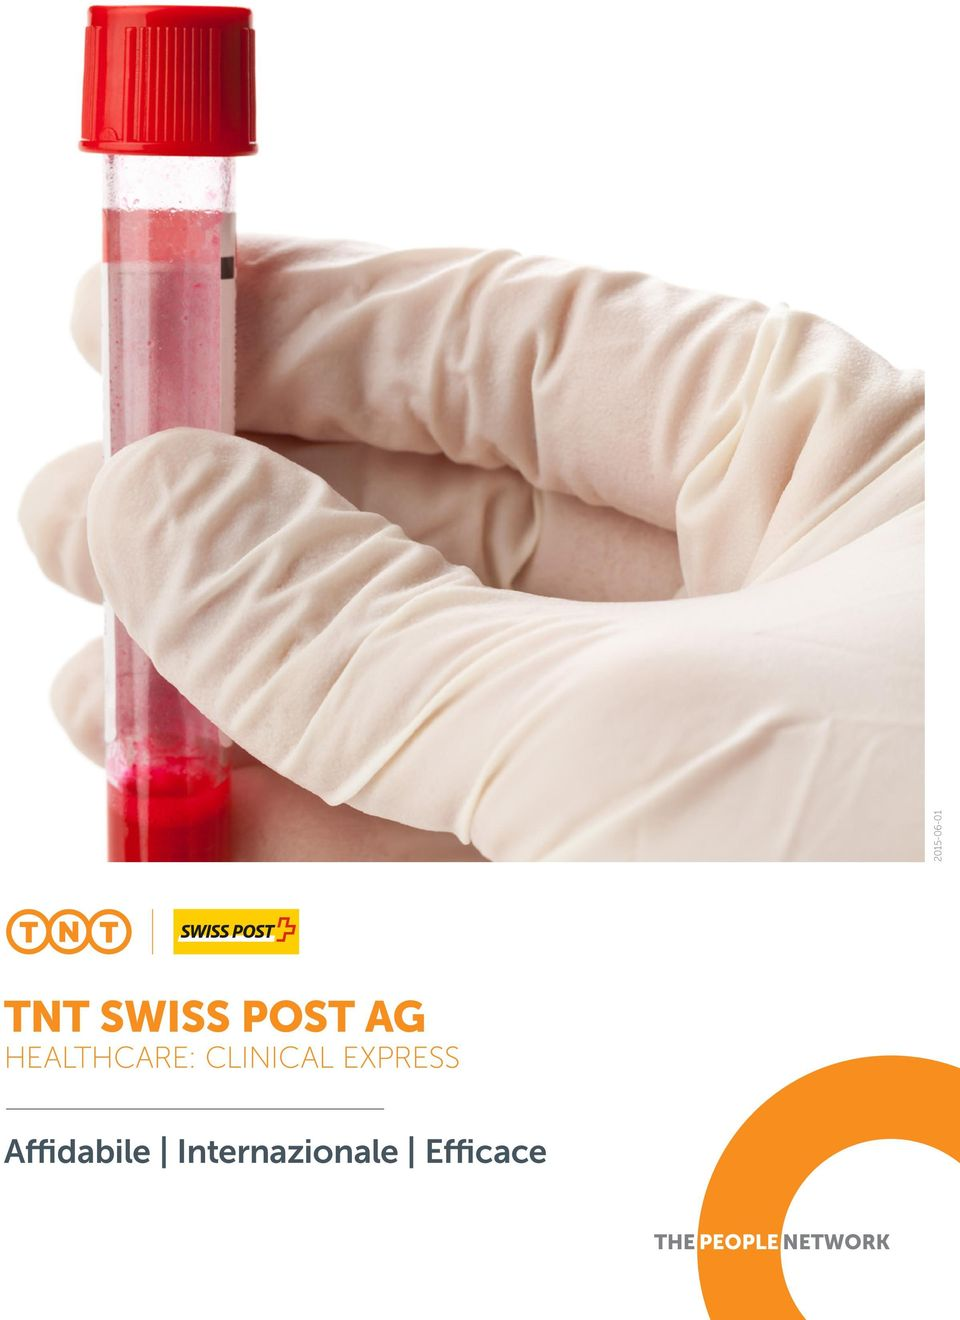 SWISS POST AG HEALTHCARE: CLINICAL